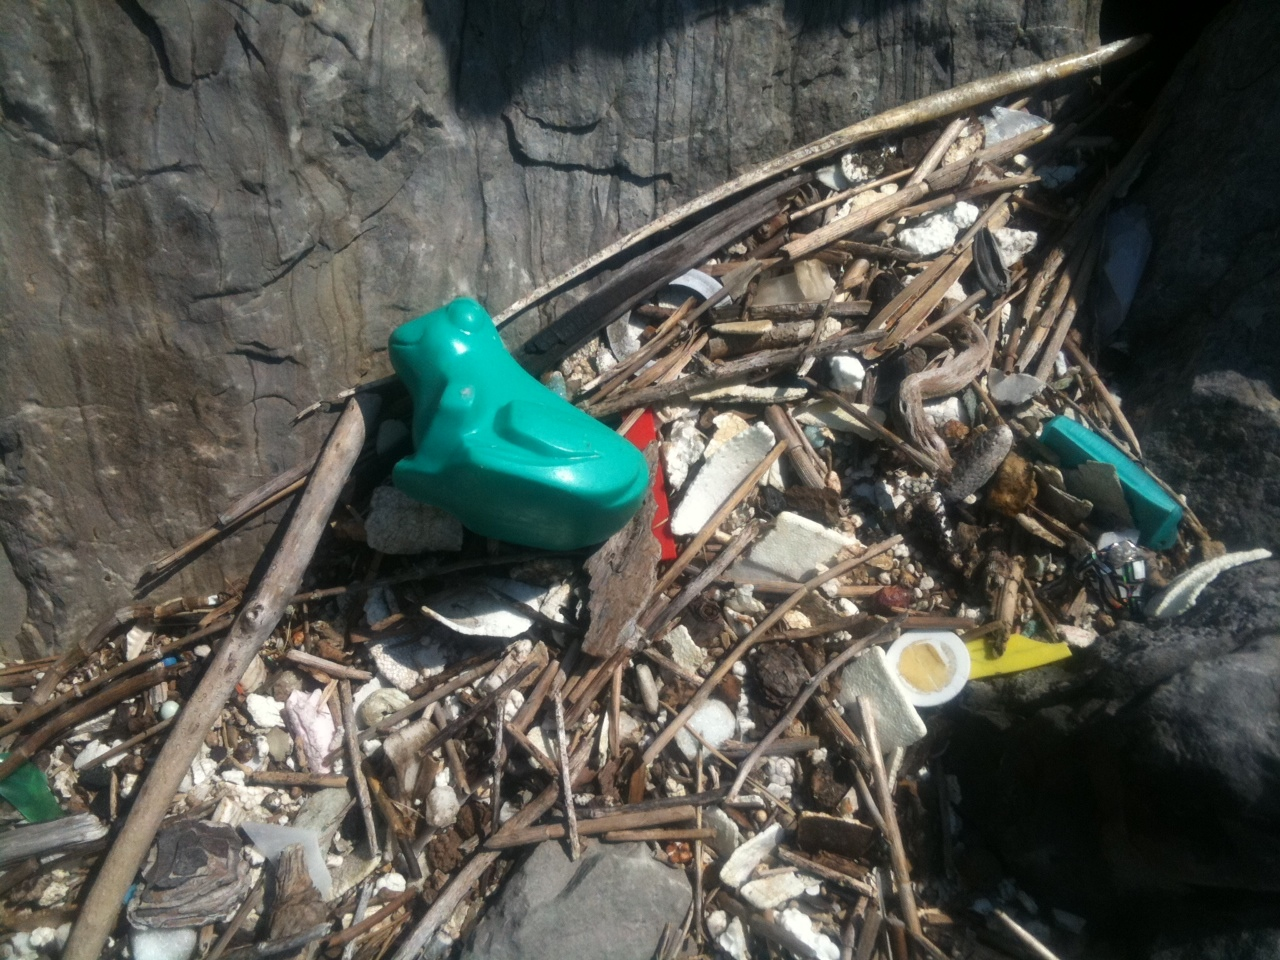 The Nearsighted Beachcomber Bath Toy Lost At Sea Found In